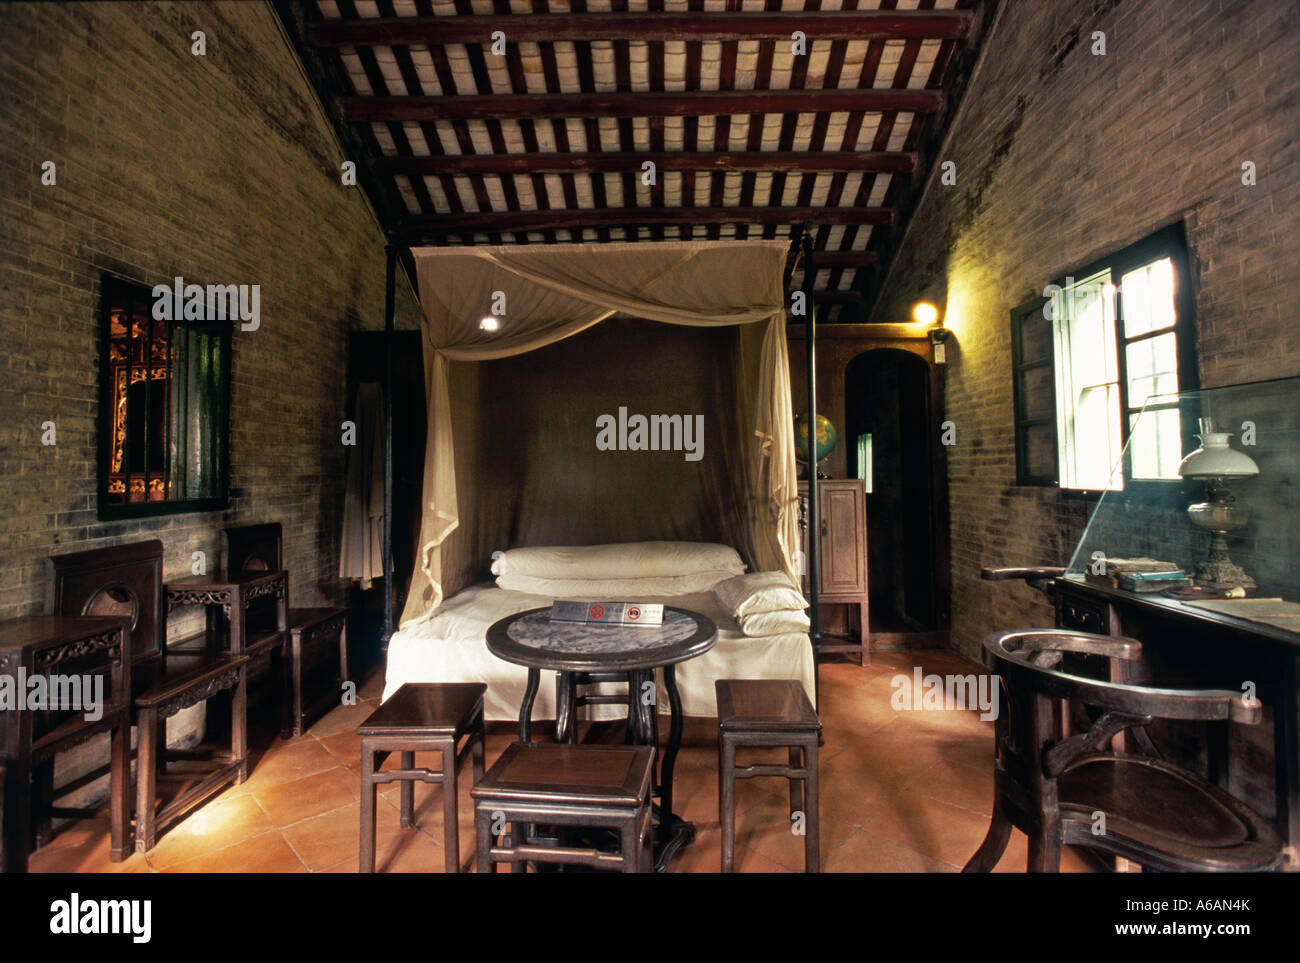 China, Guangdong, Zhongshan County, Cuiheng, Sun Yat Sen's Residence, four-poster bed in bedroom in Portuguese - Stock Image